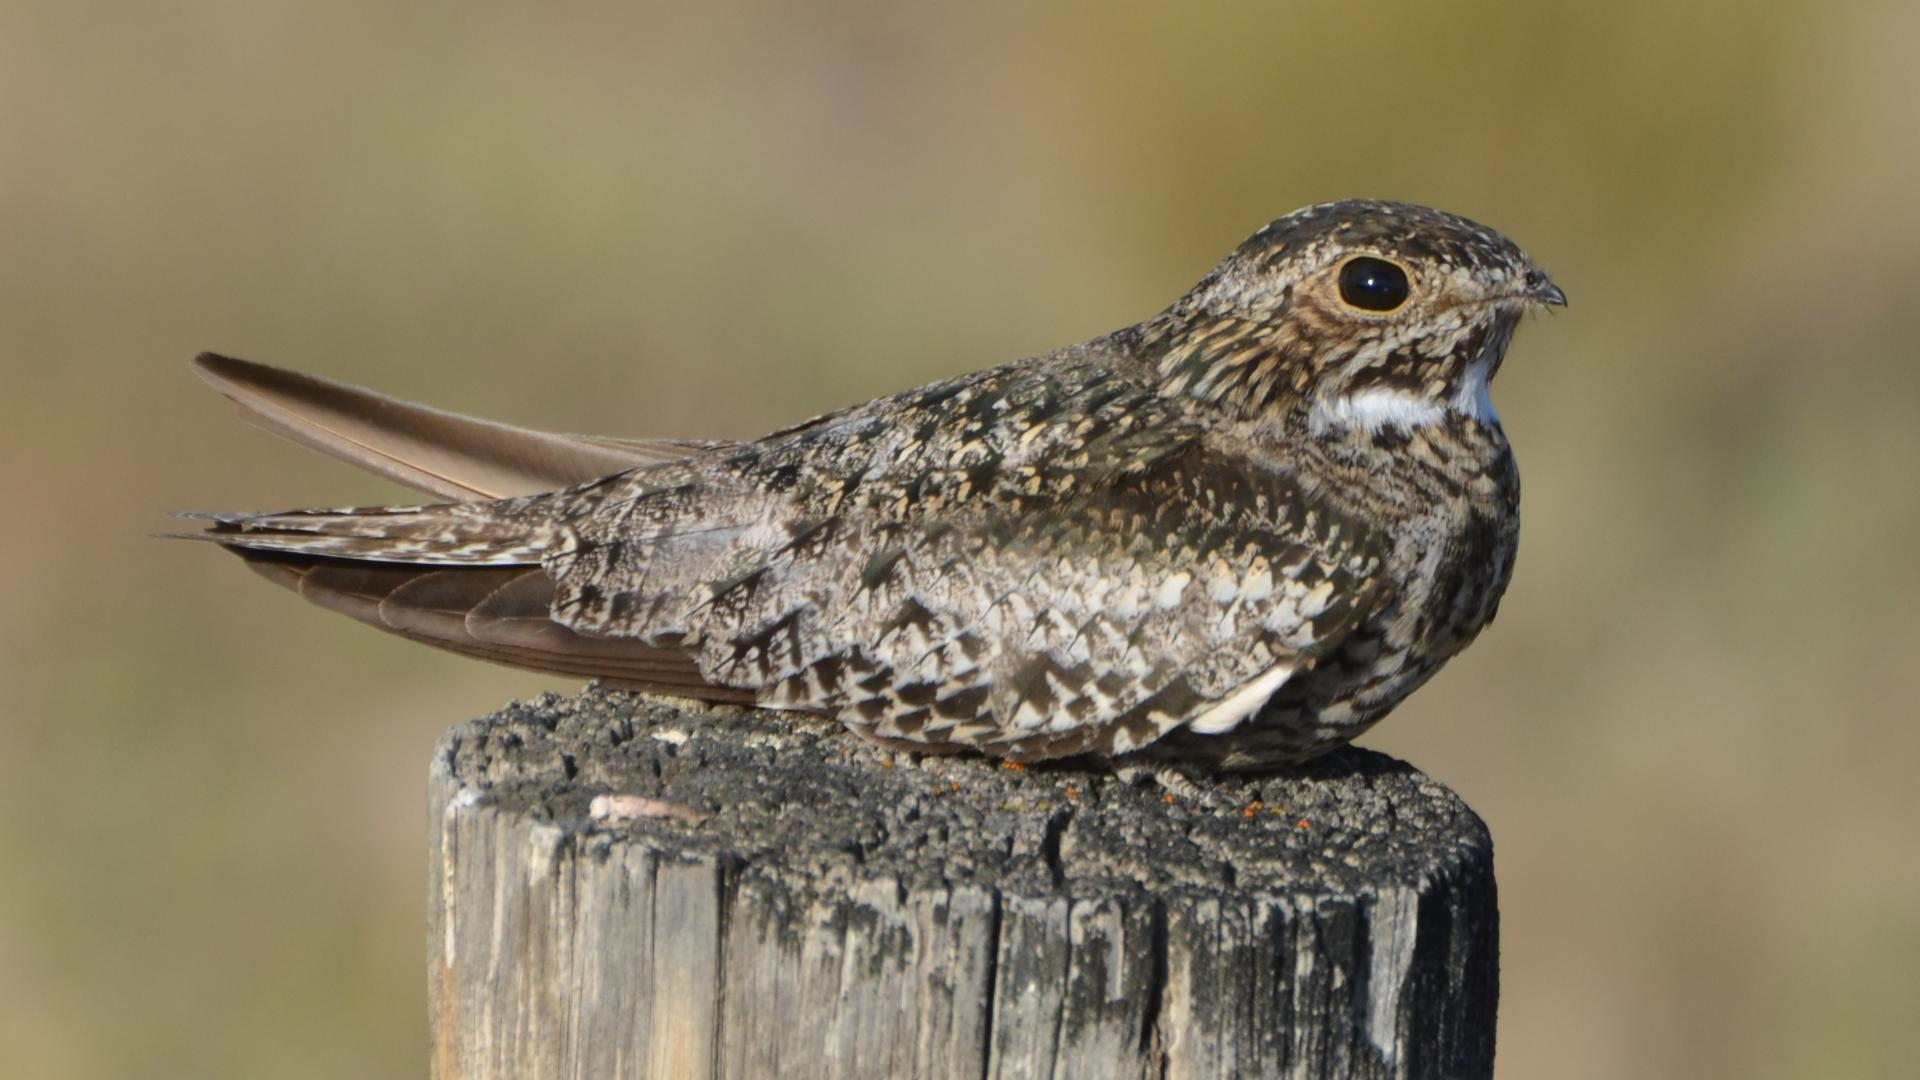 Common Nighthawk Wikipedia